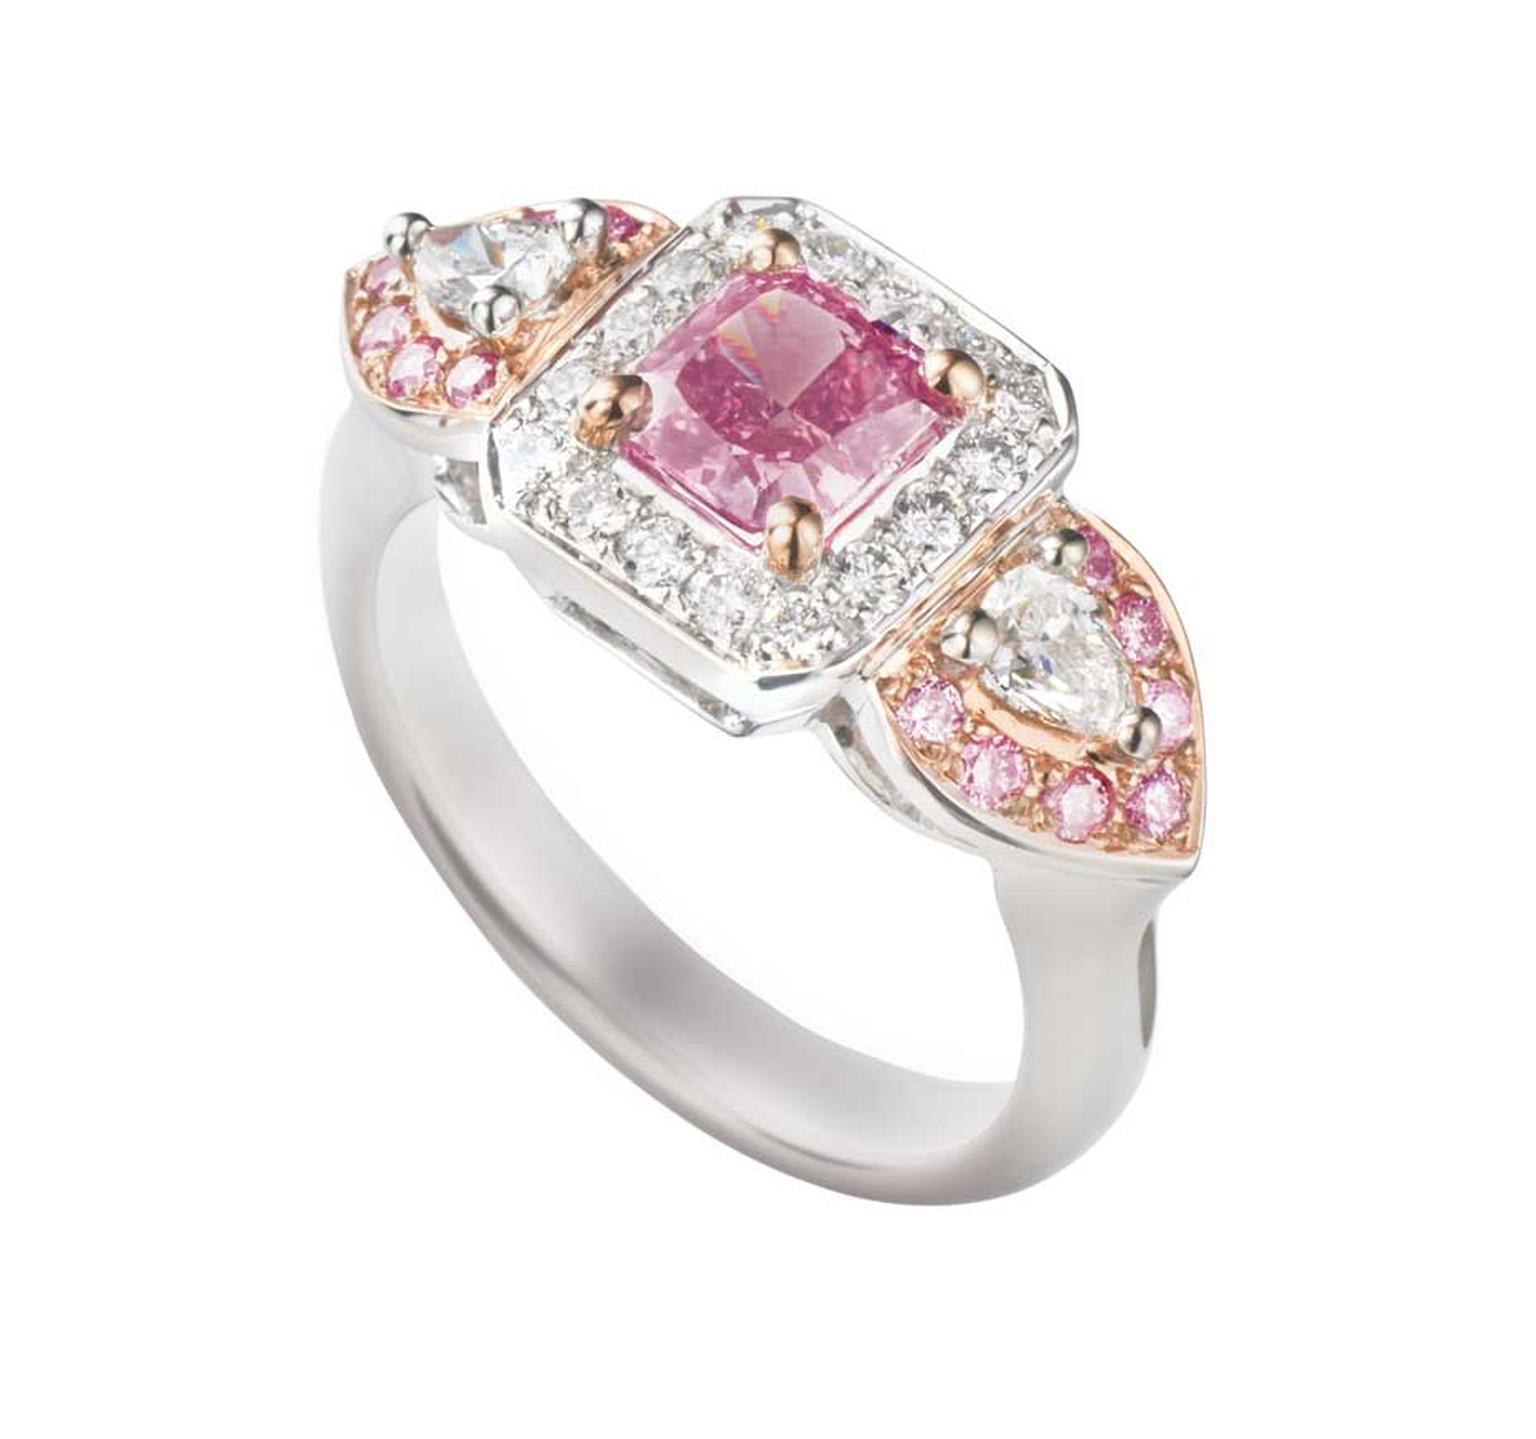 James Thredgold Pink Prosperity ring, featuring an 0.85ct radiant-cut Intense Pink Argyle diamond set within a white diamond halo. The hero gem is nestled within two pear-shape diamonds surrounded by a halo of pink Argyle diamonds in white gold. Available